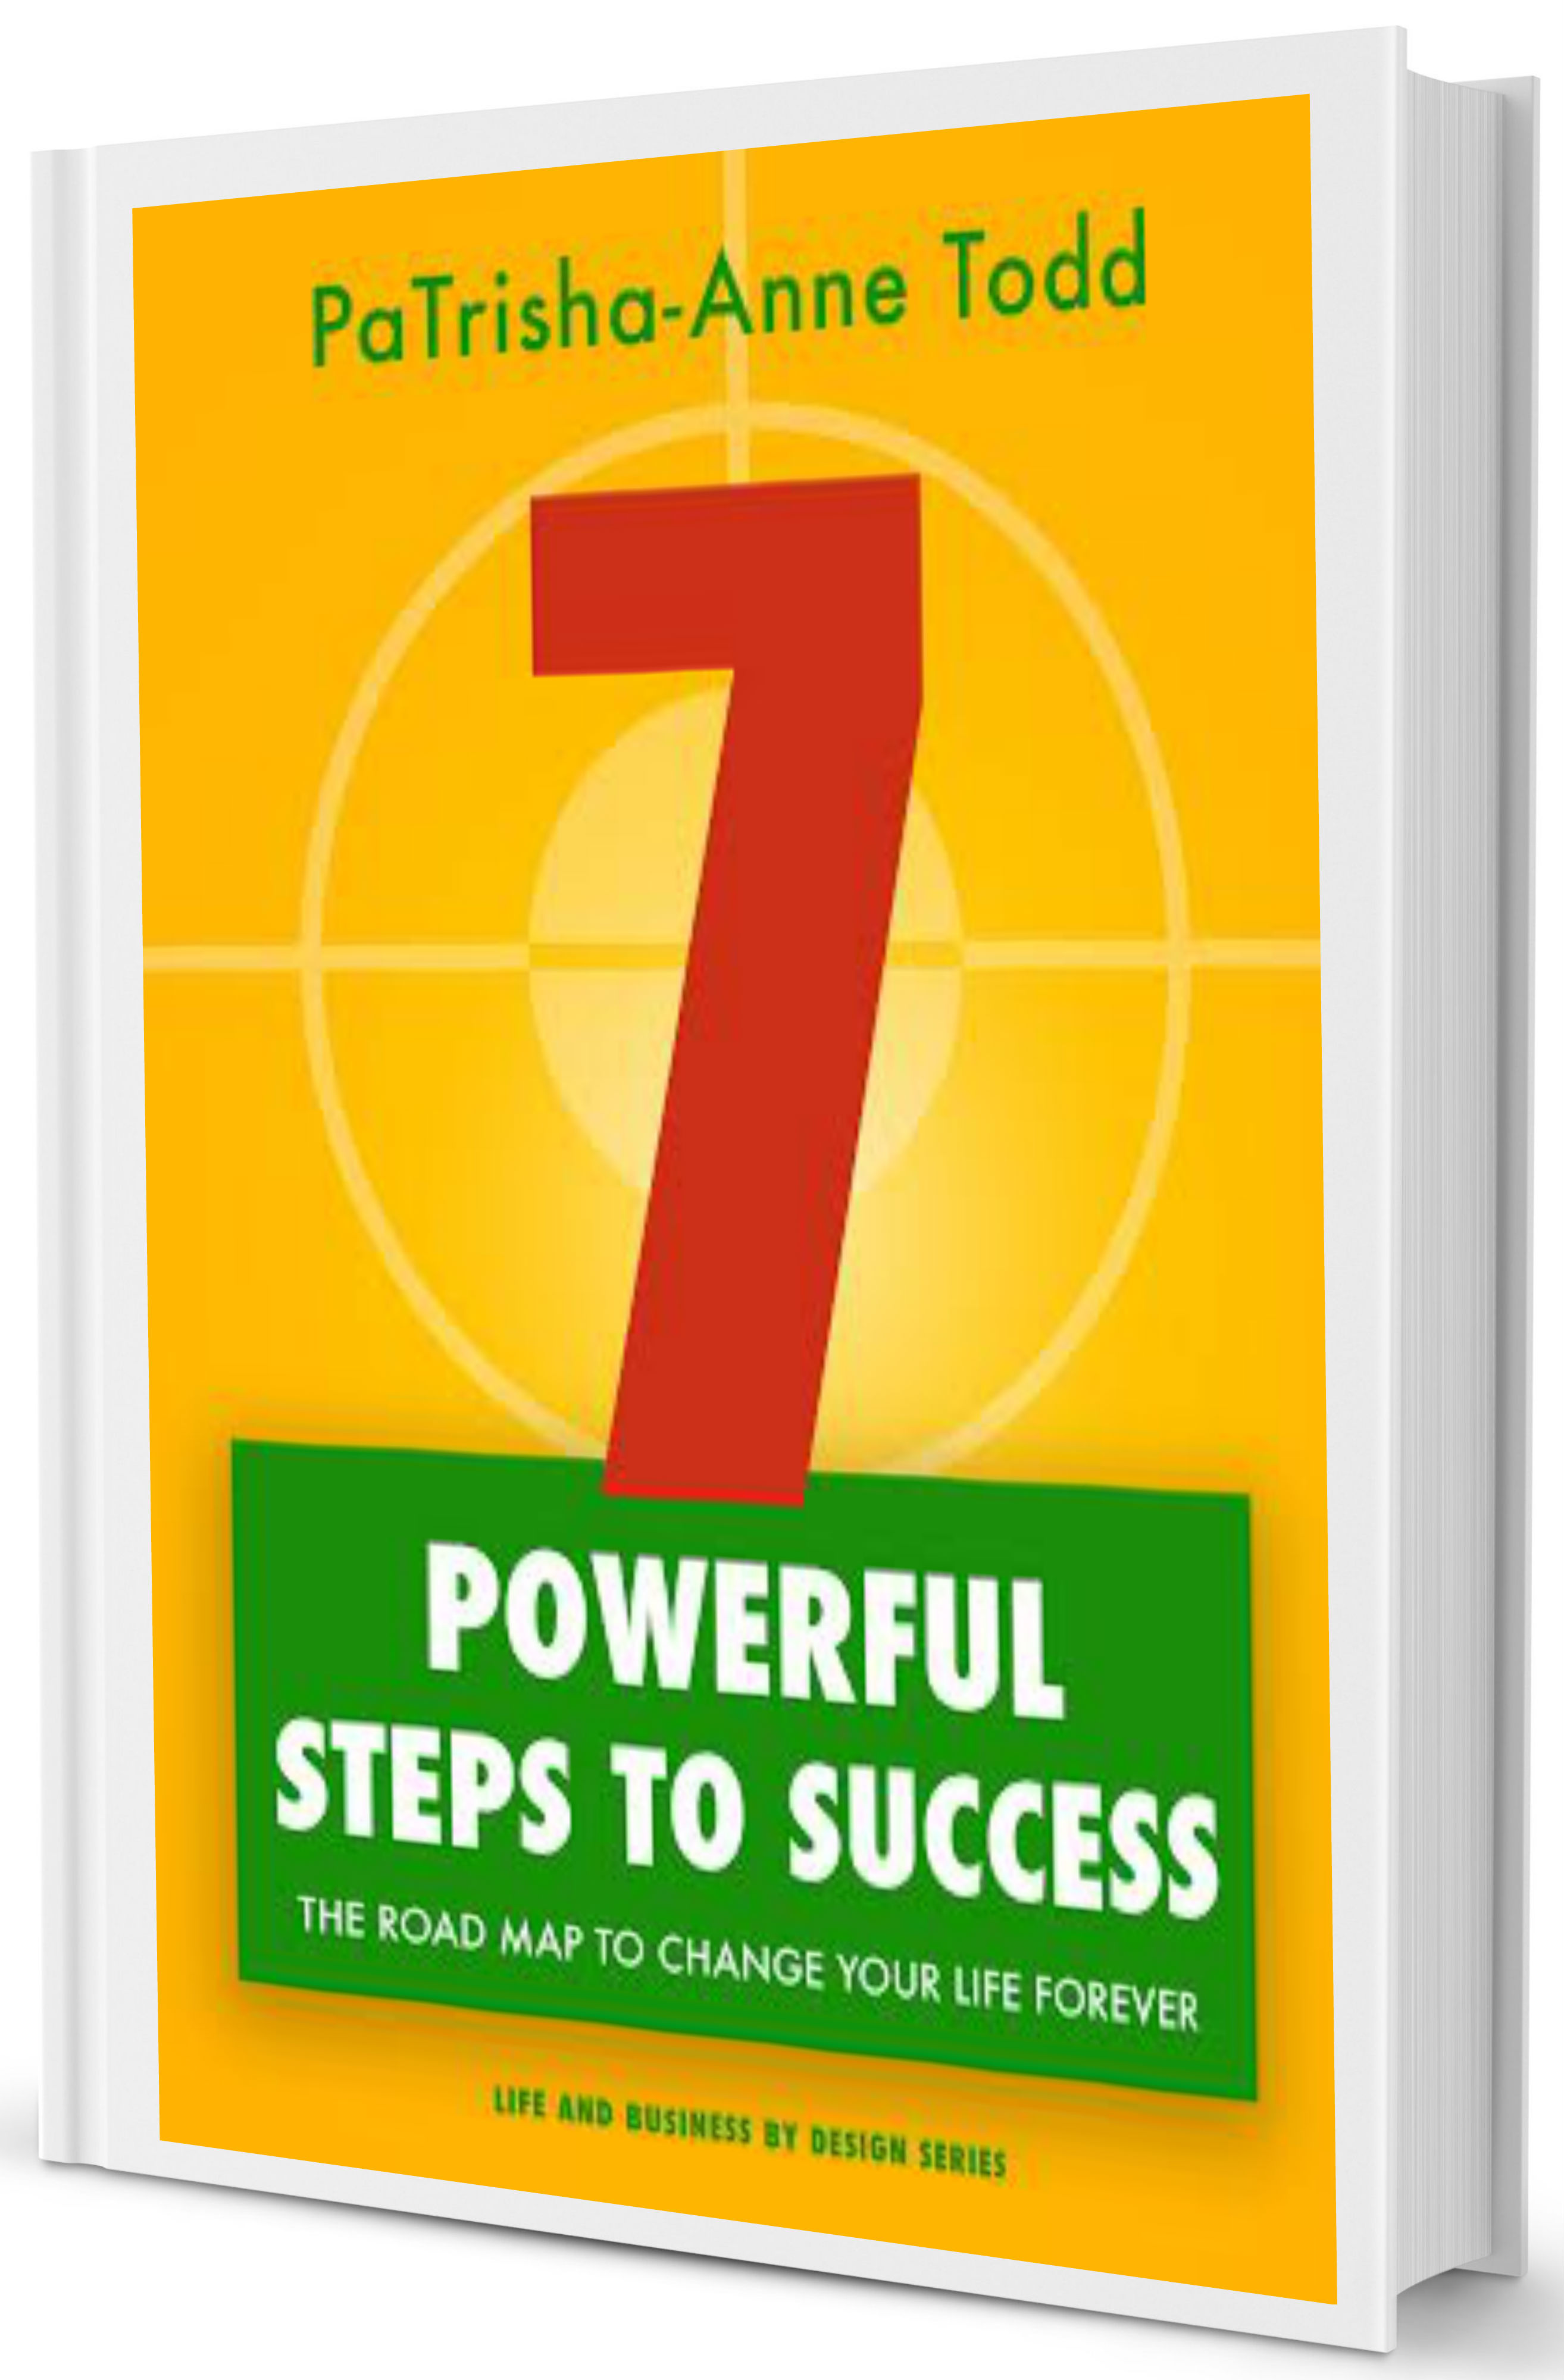 7 Powerful Steps To Success by PaTrisha-Anne Todd Founder at Coaching Leads To Success